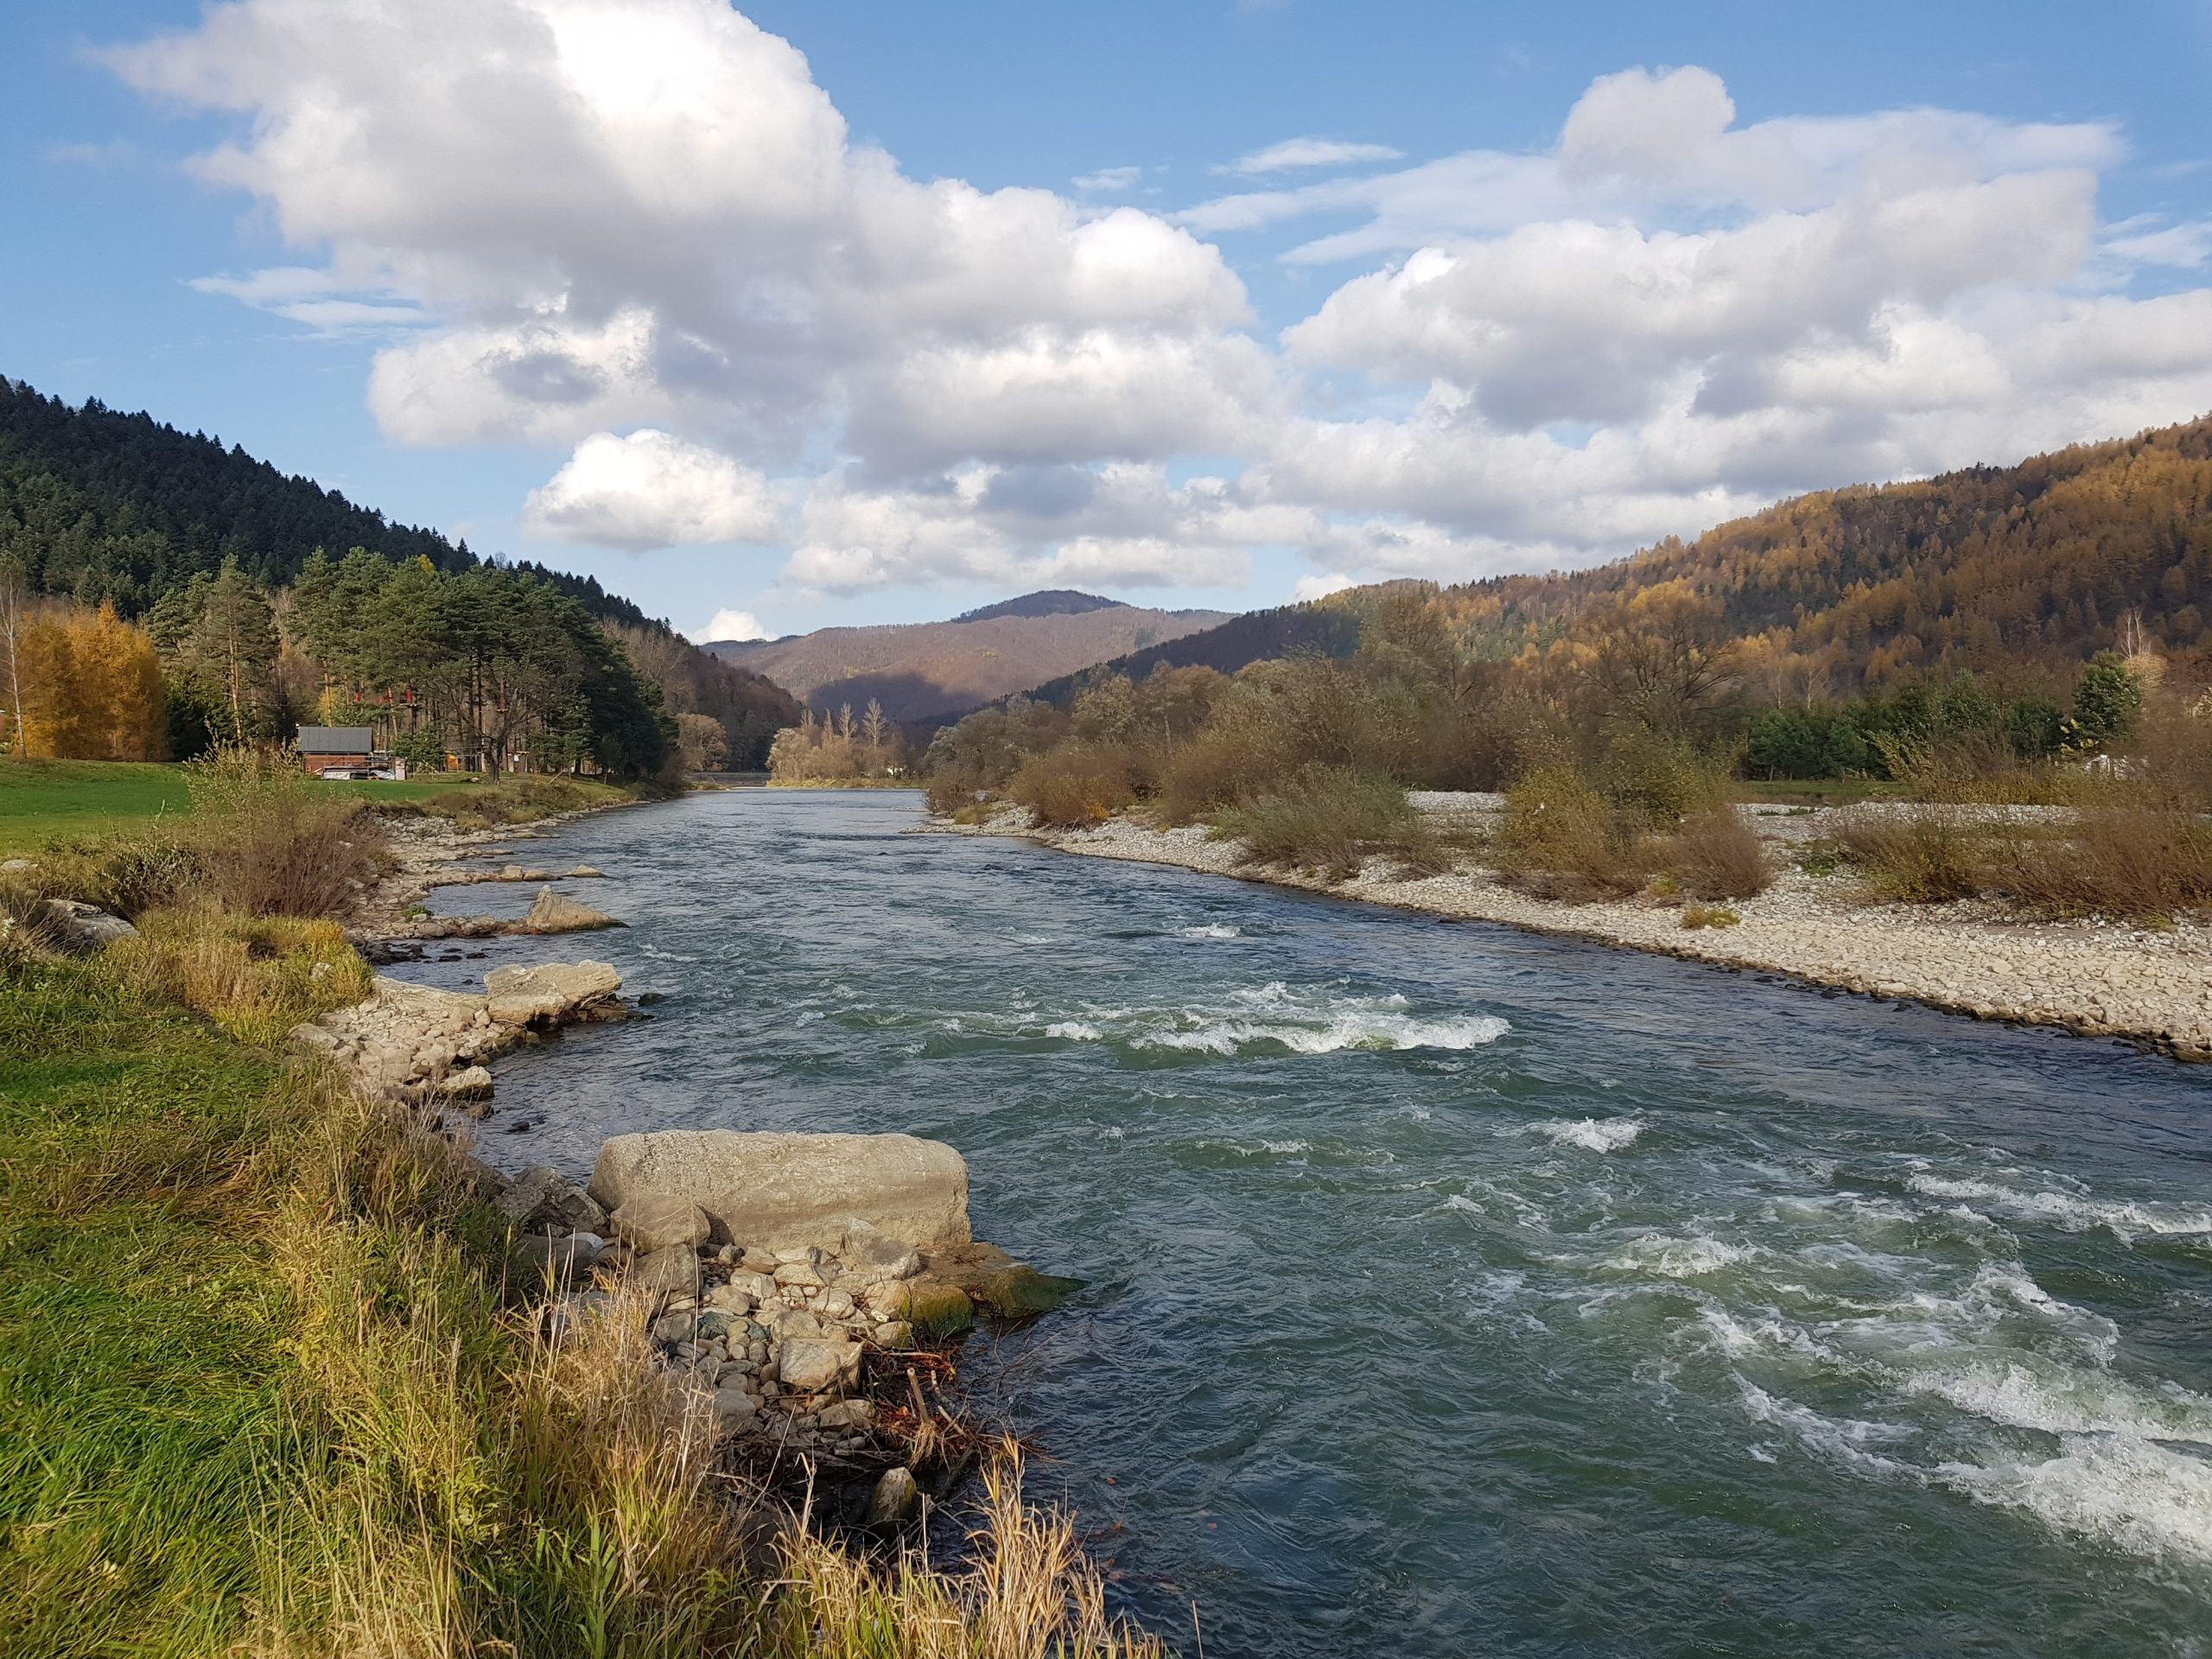 Kayak spot, no-kill area for trout, grayling, Danube Salmon Fly fishing